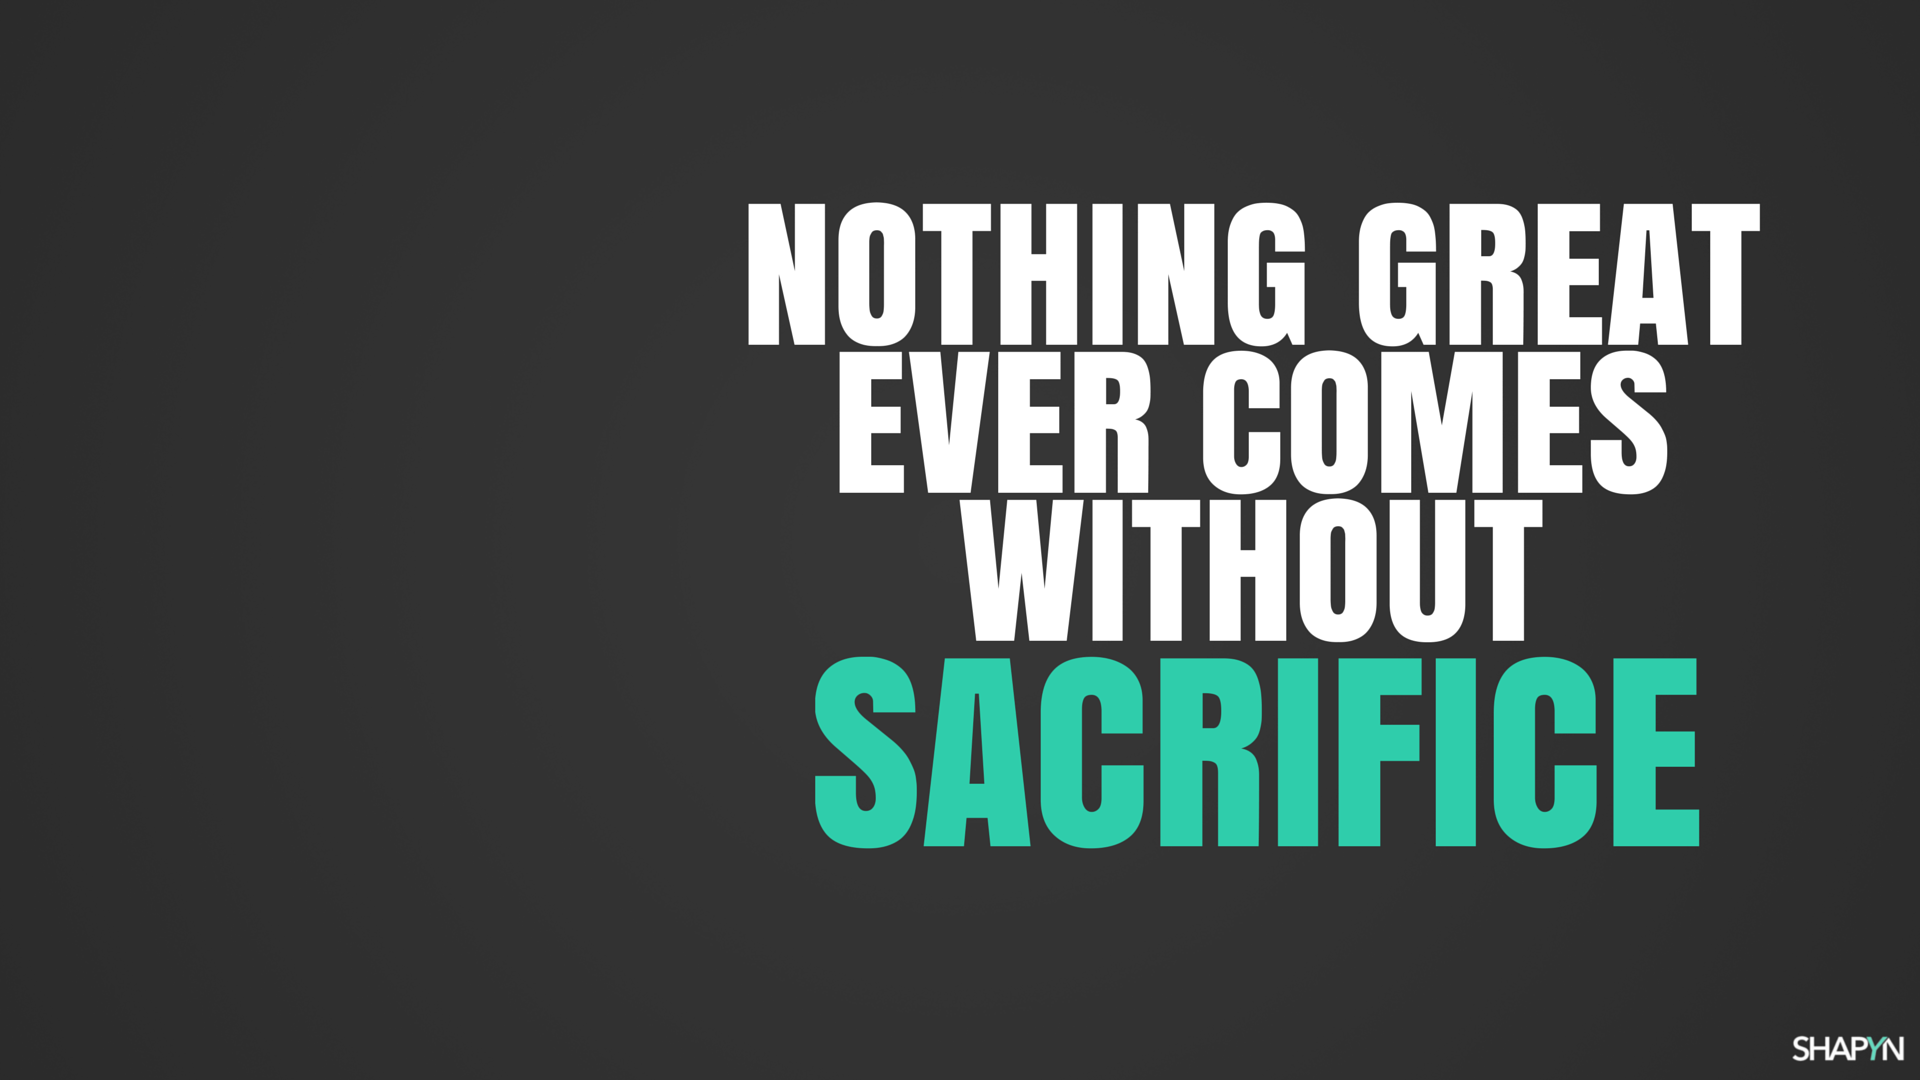 nothing great ever comes without sacrifice hintergrundbild